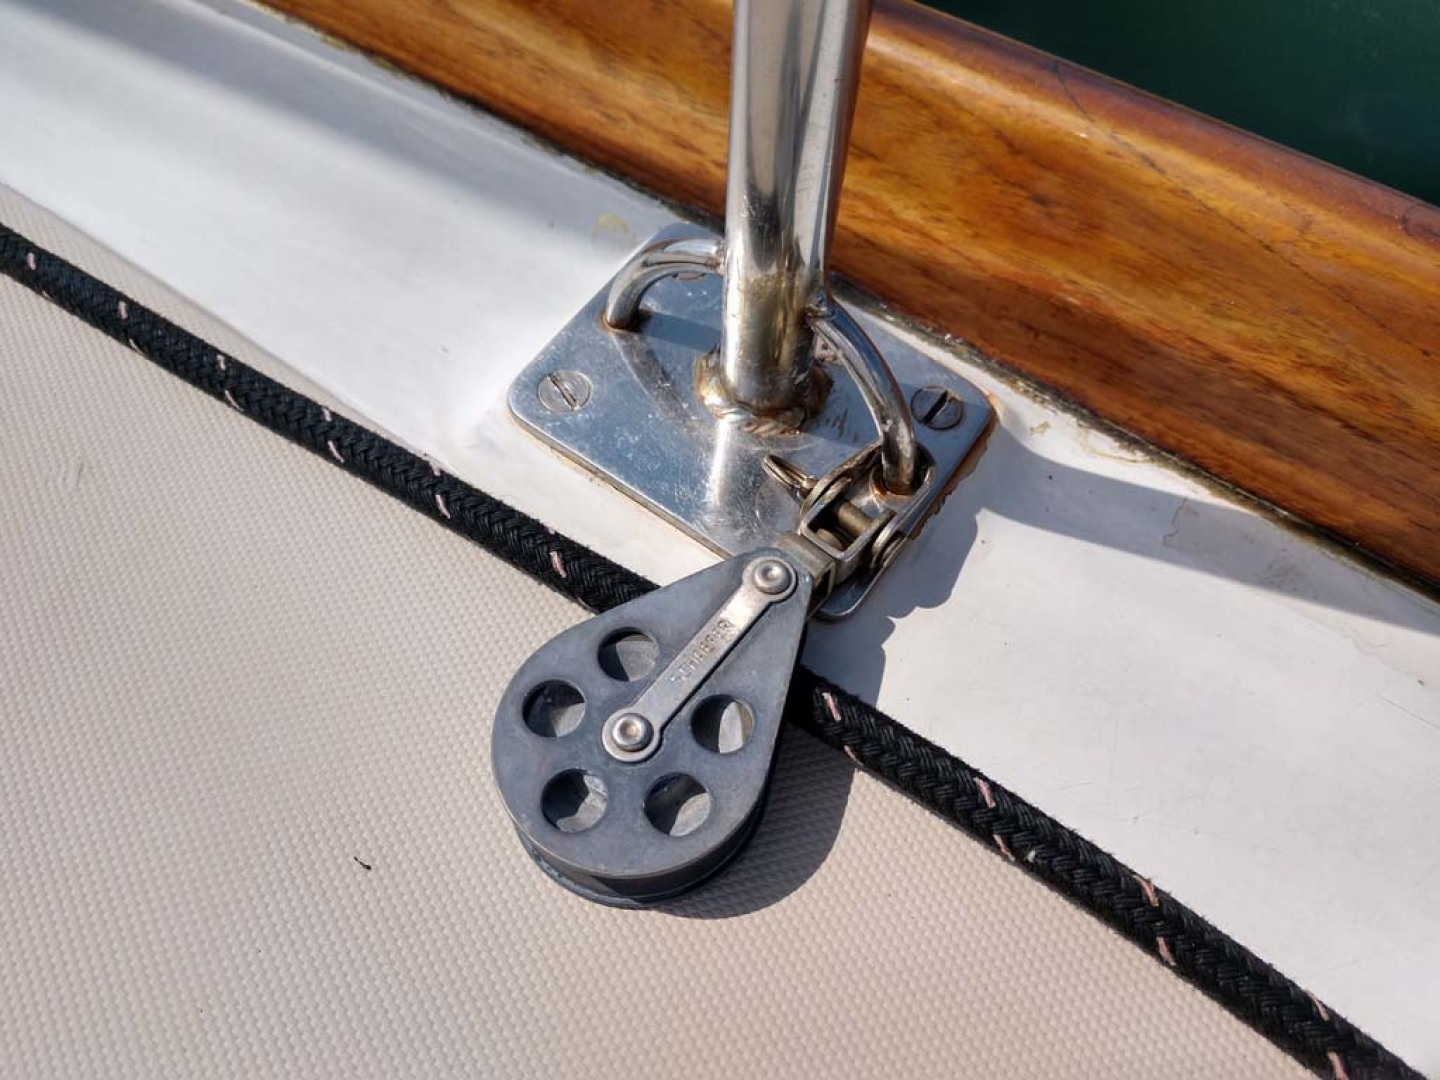 Hinckley-Bermuda 40 MK III Sloop 1979-Evensong Camden-Maine-United States-Stanchion-1200183 | Thumbnail